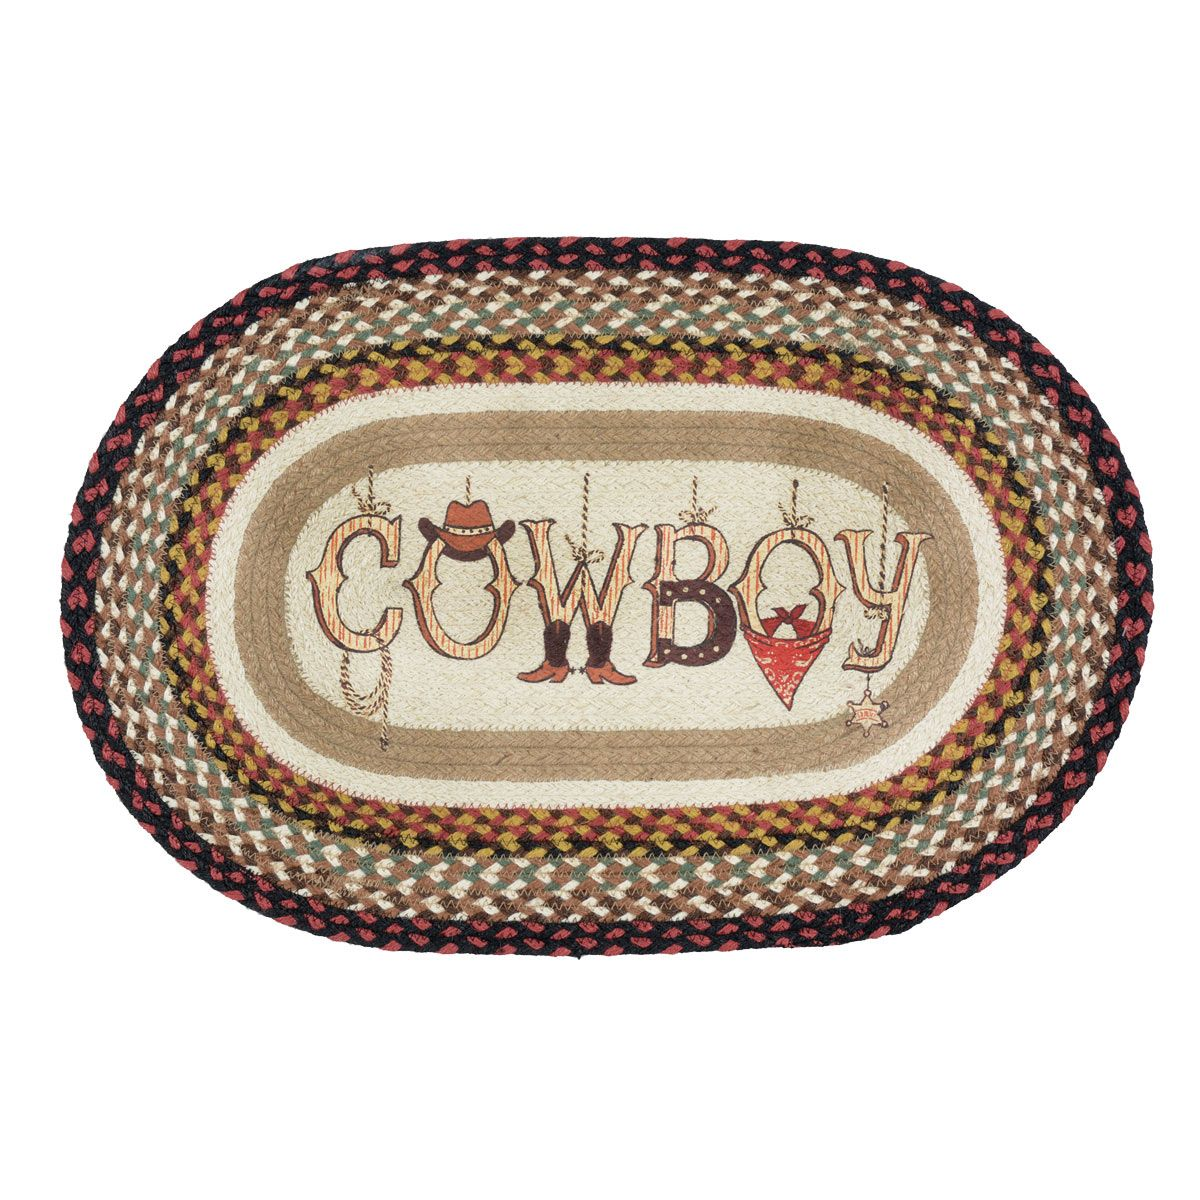 Cowboy Braided Oval Accent Rug